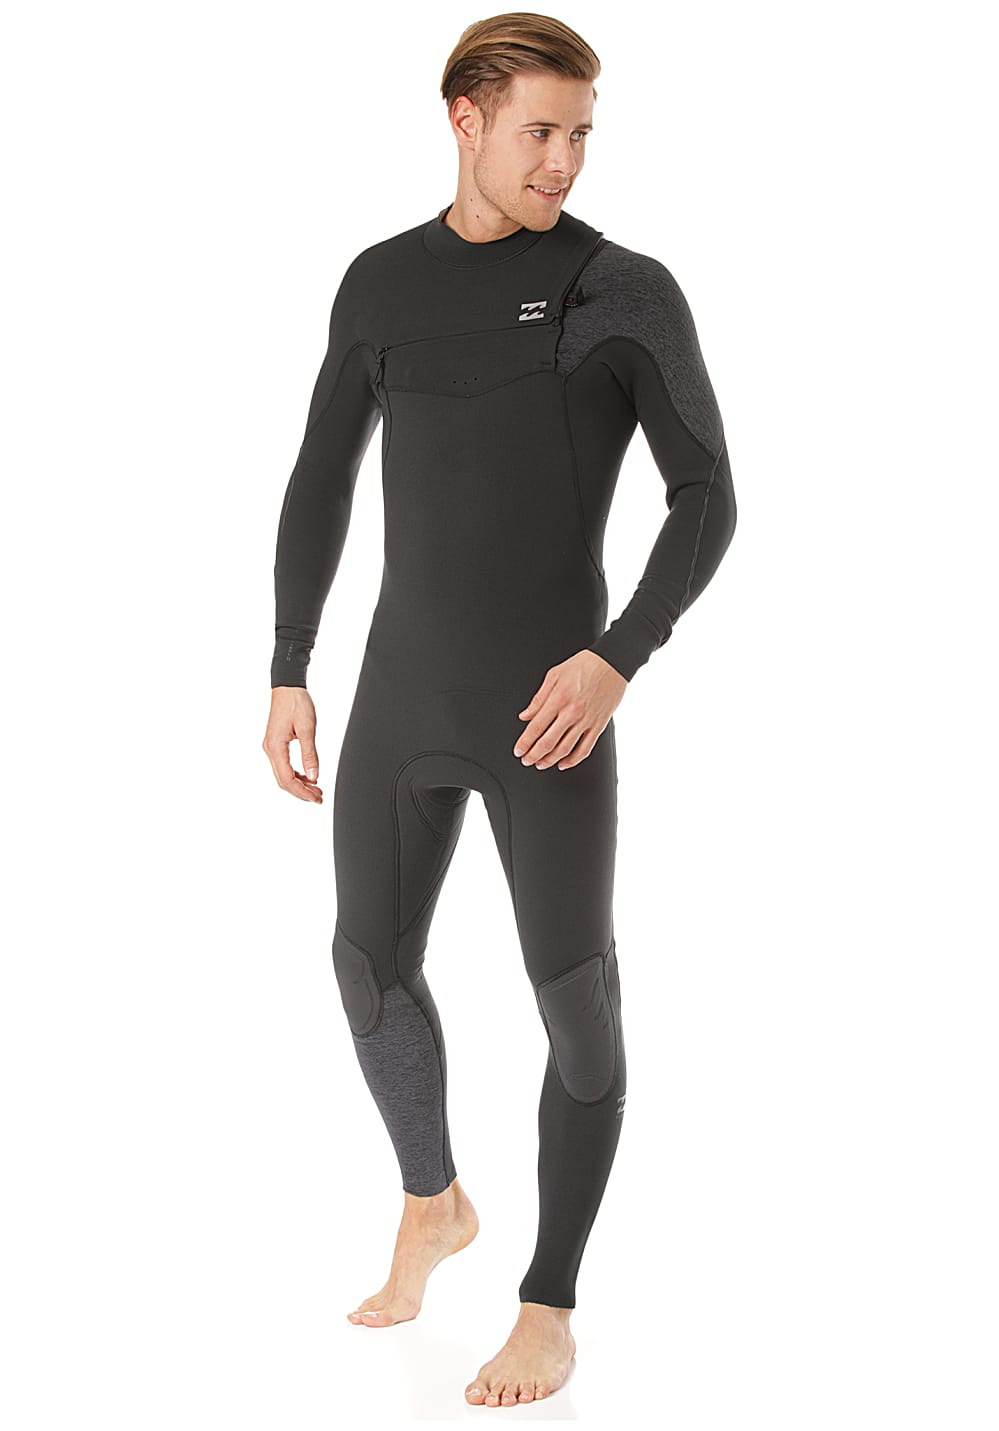 BILLABONG Furnace Carbon Comp 4/3Mm Chest Zip - Neoprenanzug für Herren -...